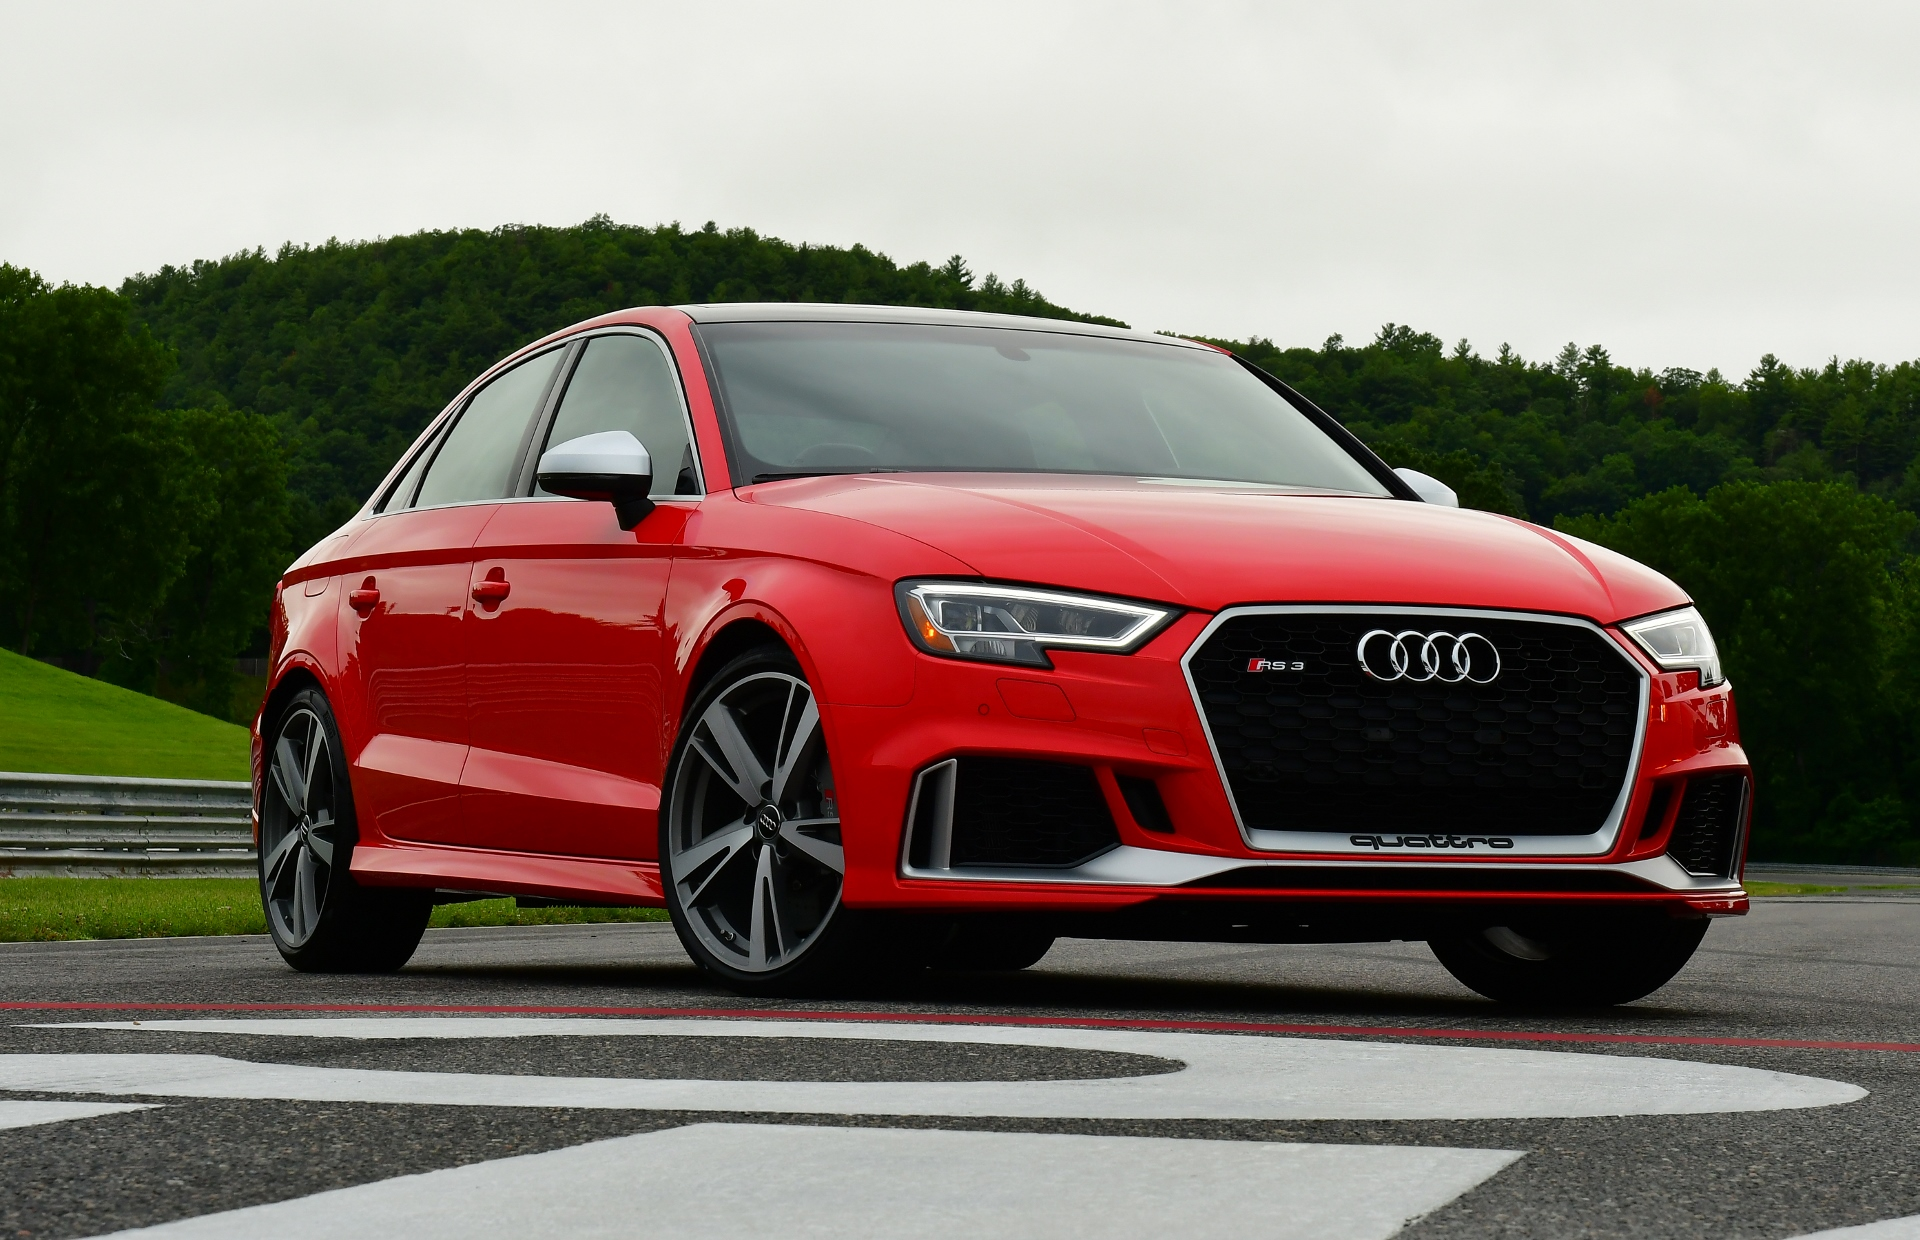 2018 audi rs 3 first drive review less money but no less fun. Black Bedroom Furniture Sets. Home Design Ideas